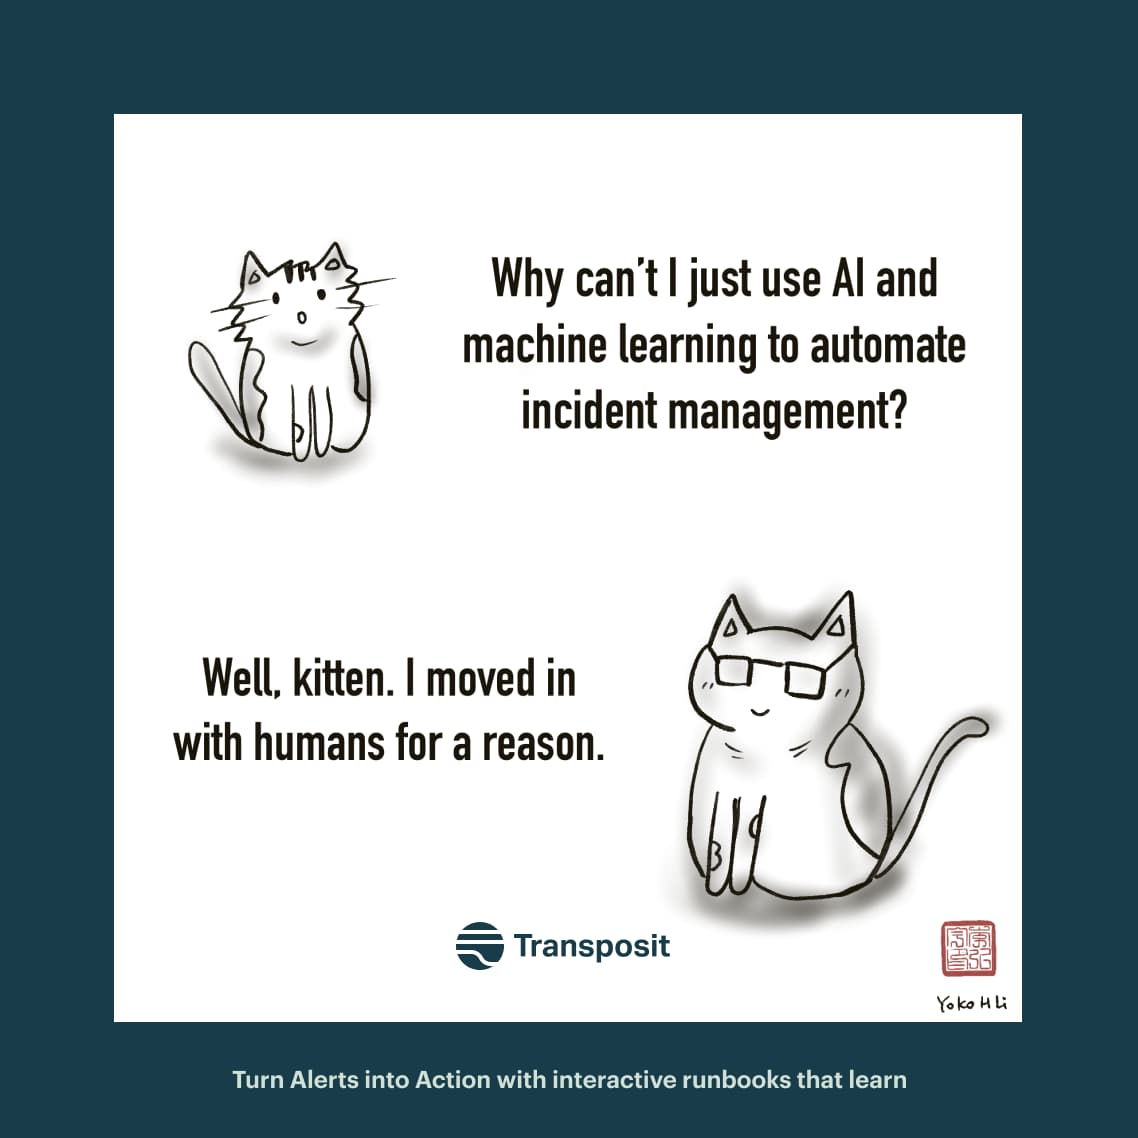 """Kitten: """"Why can't I just use AI and machine learning to automate incident management? Cat: """"Well, kitten. I moved in with humans for a reason."""""""